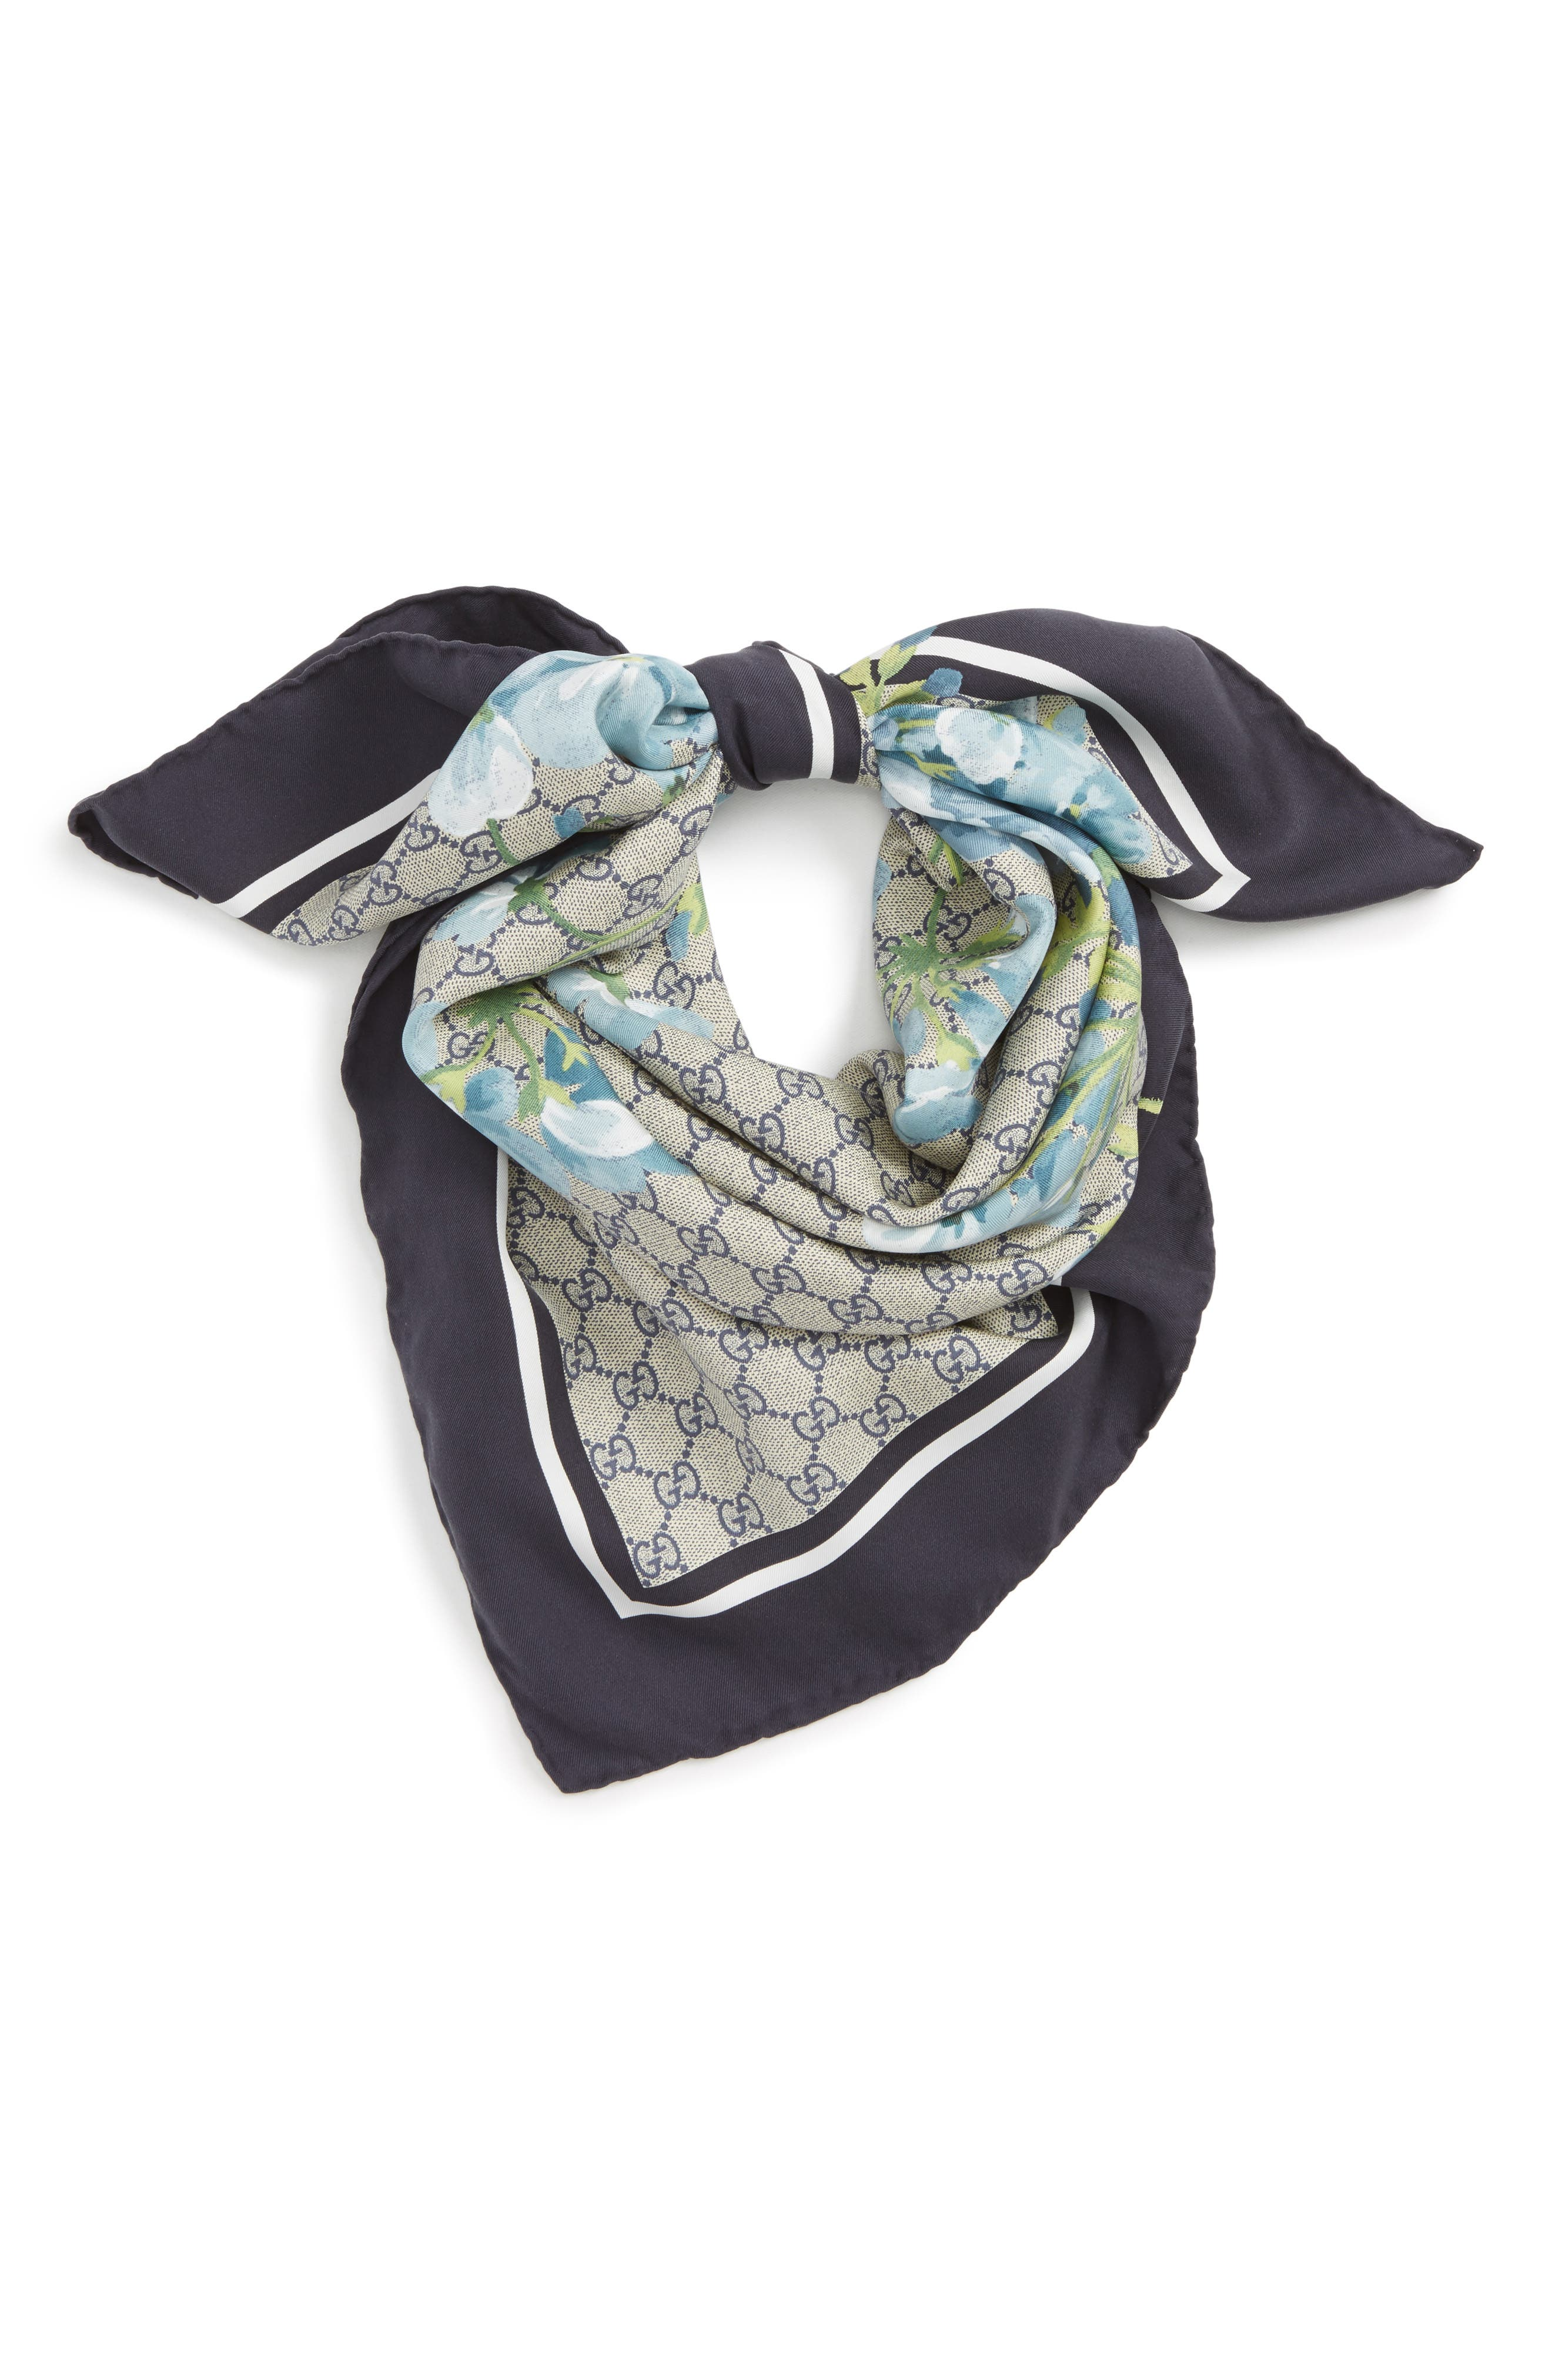 GG Blooms Foulard Scarf,                             Main thumbnail 1, color,                             400